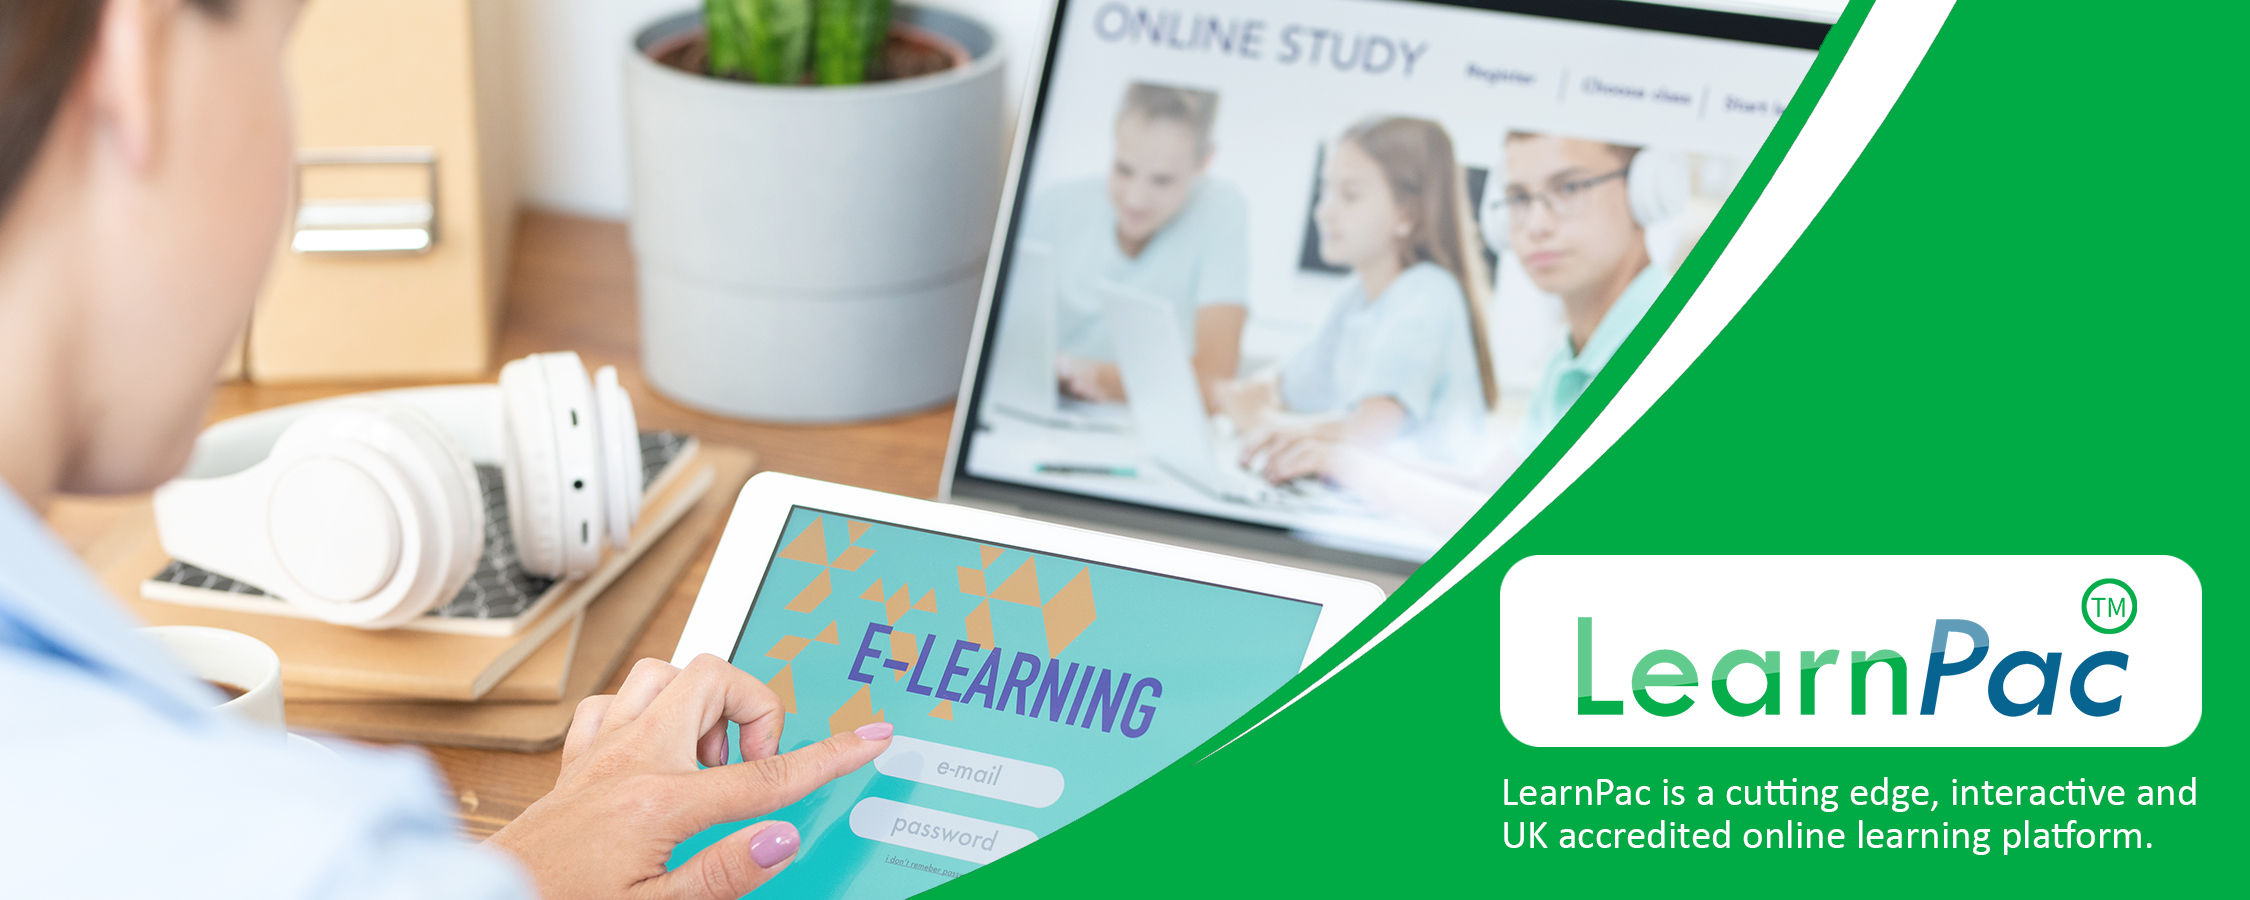 Care Certificate Standard 6 - E-Learning Courses - LearnPac Systems UK -